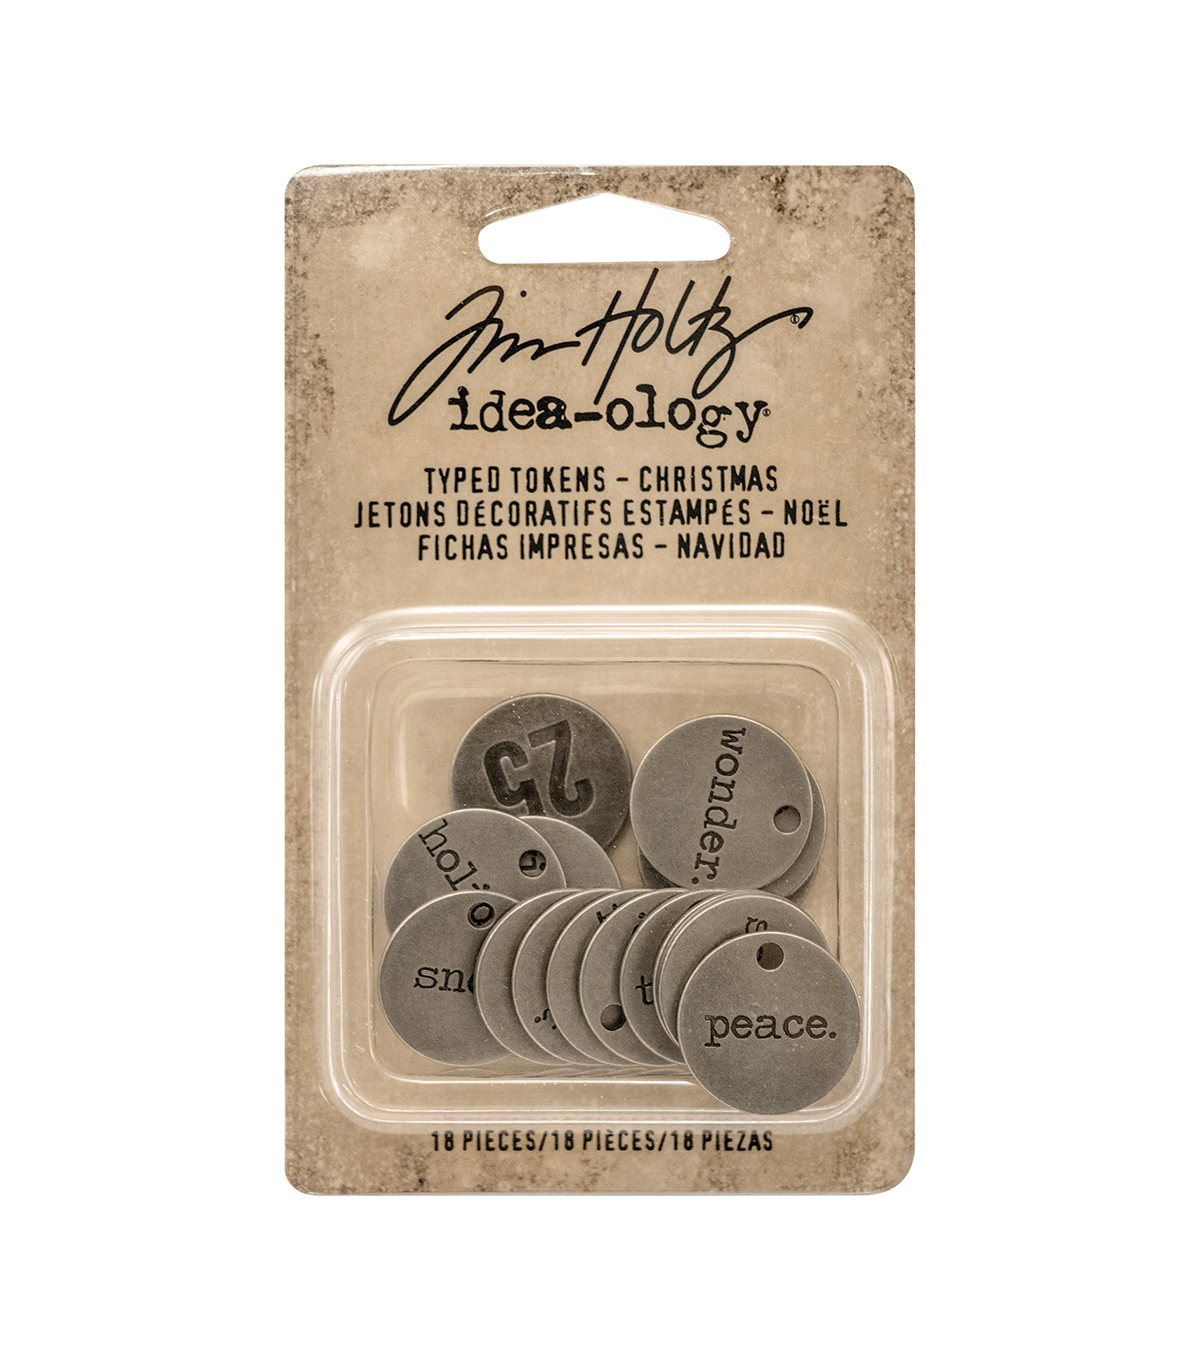 Tim Holtz Idea-ology Typed Tokens-Christmas